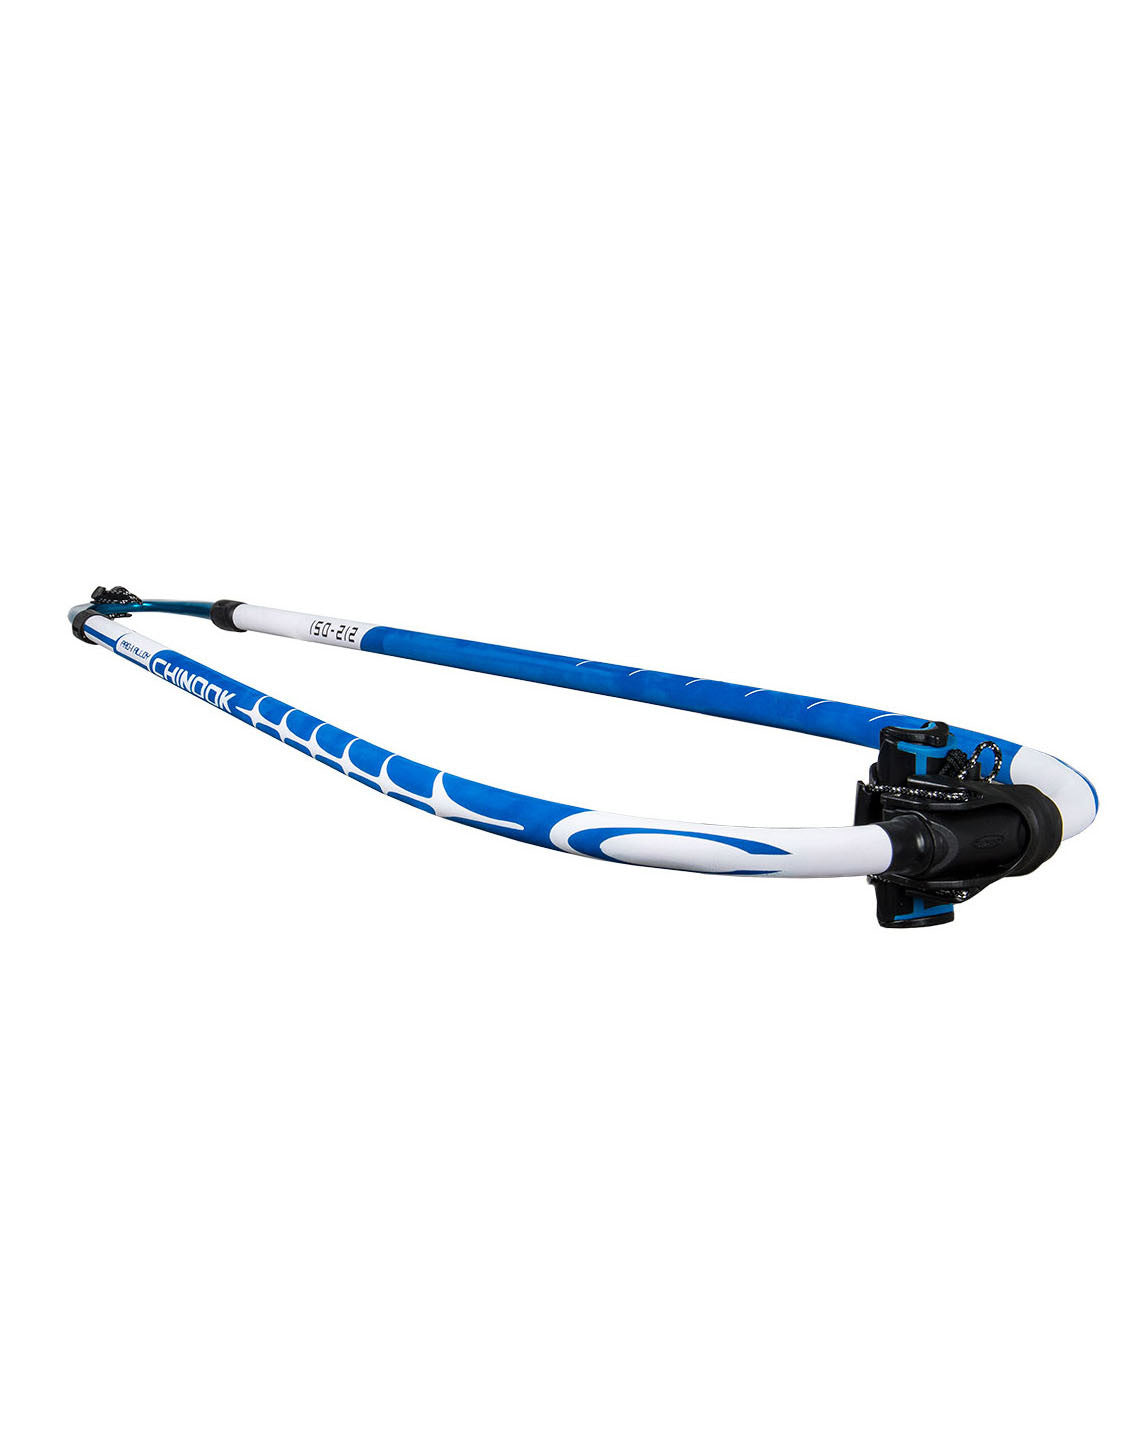 Pro-1 Alloy Boom 150-212cm 29mm (Out of stock until September 12th Pre-order available))